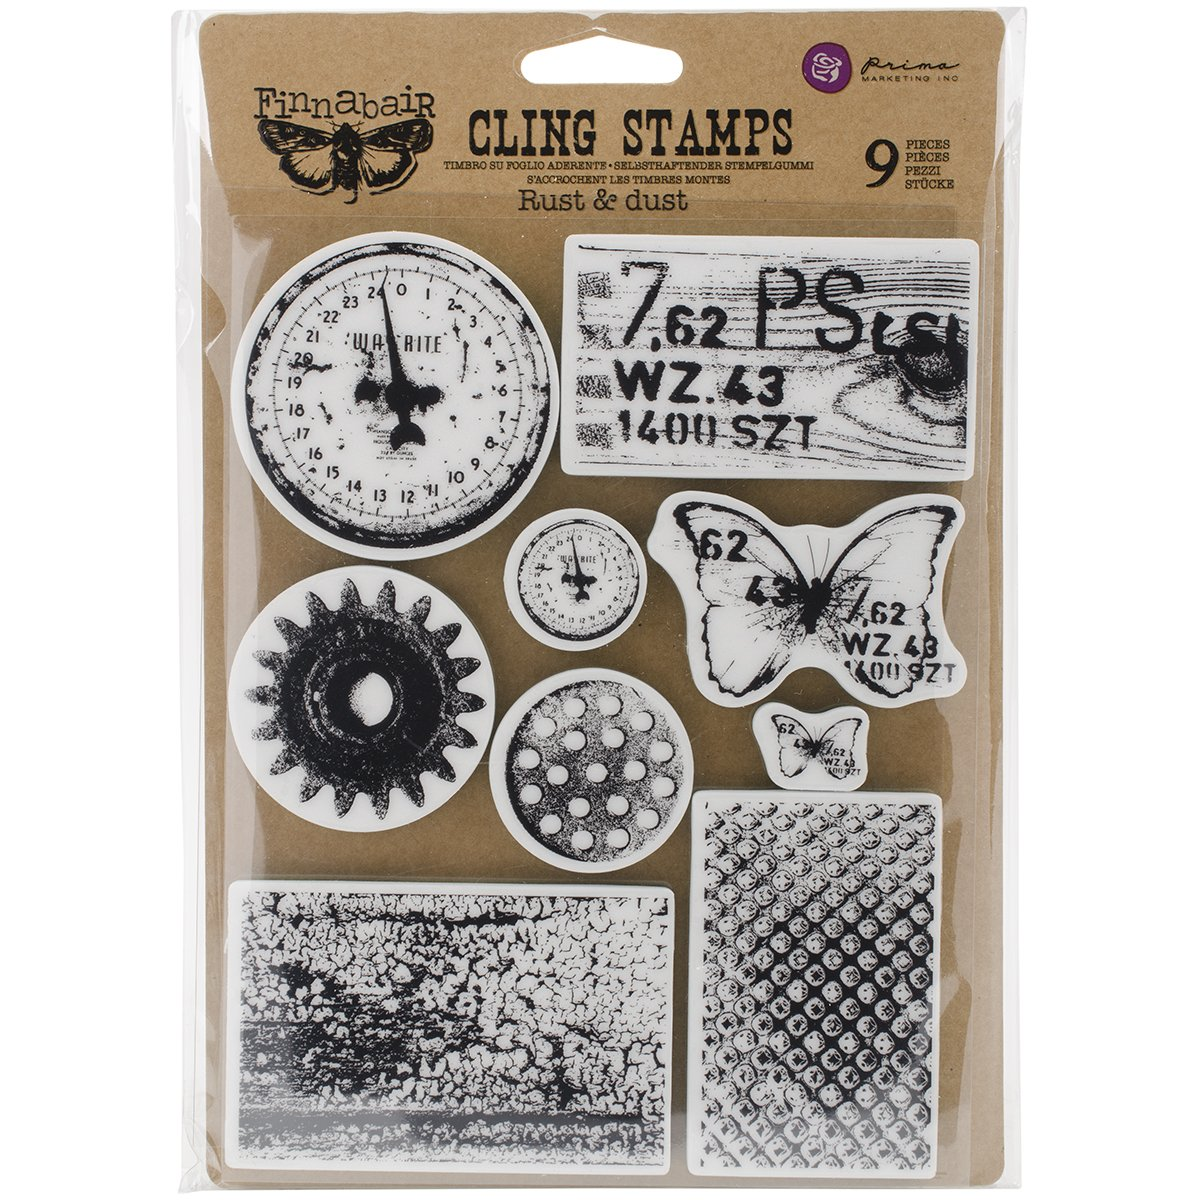 Prima Marketing Finnabair Cling Stamps 6X7.5, Rust & Dust 962050